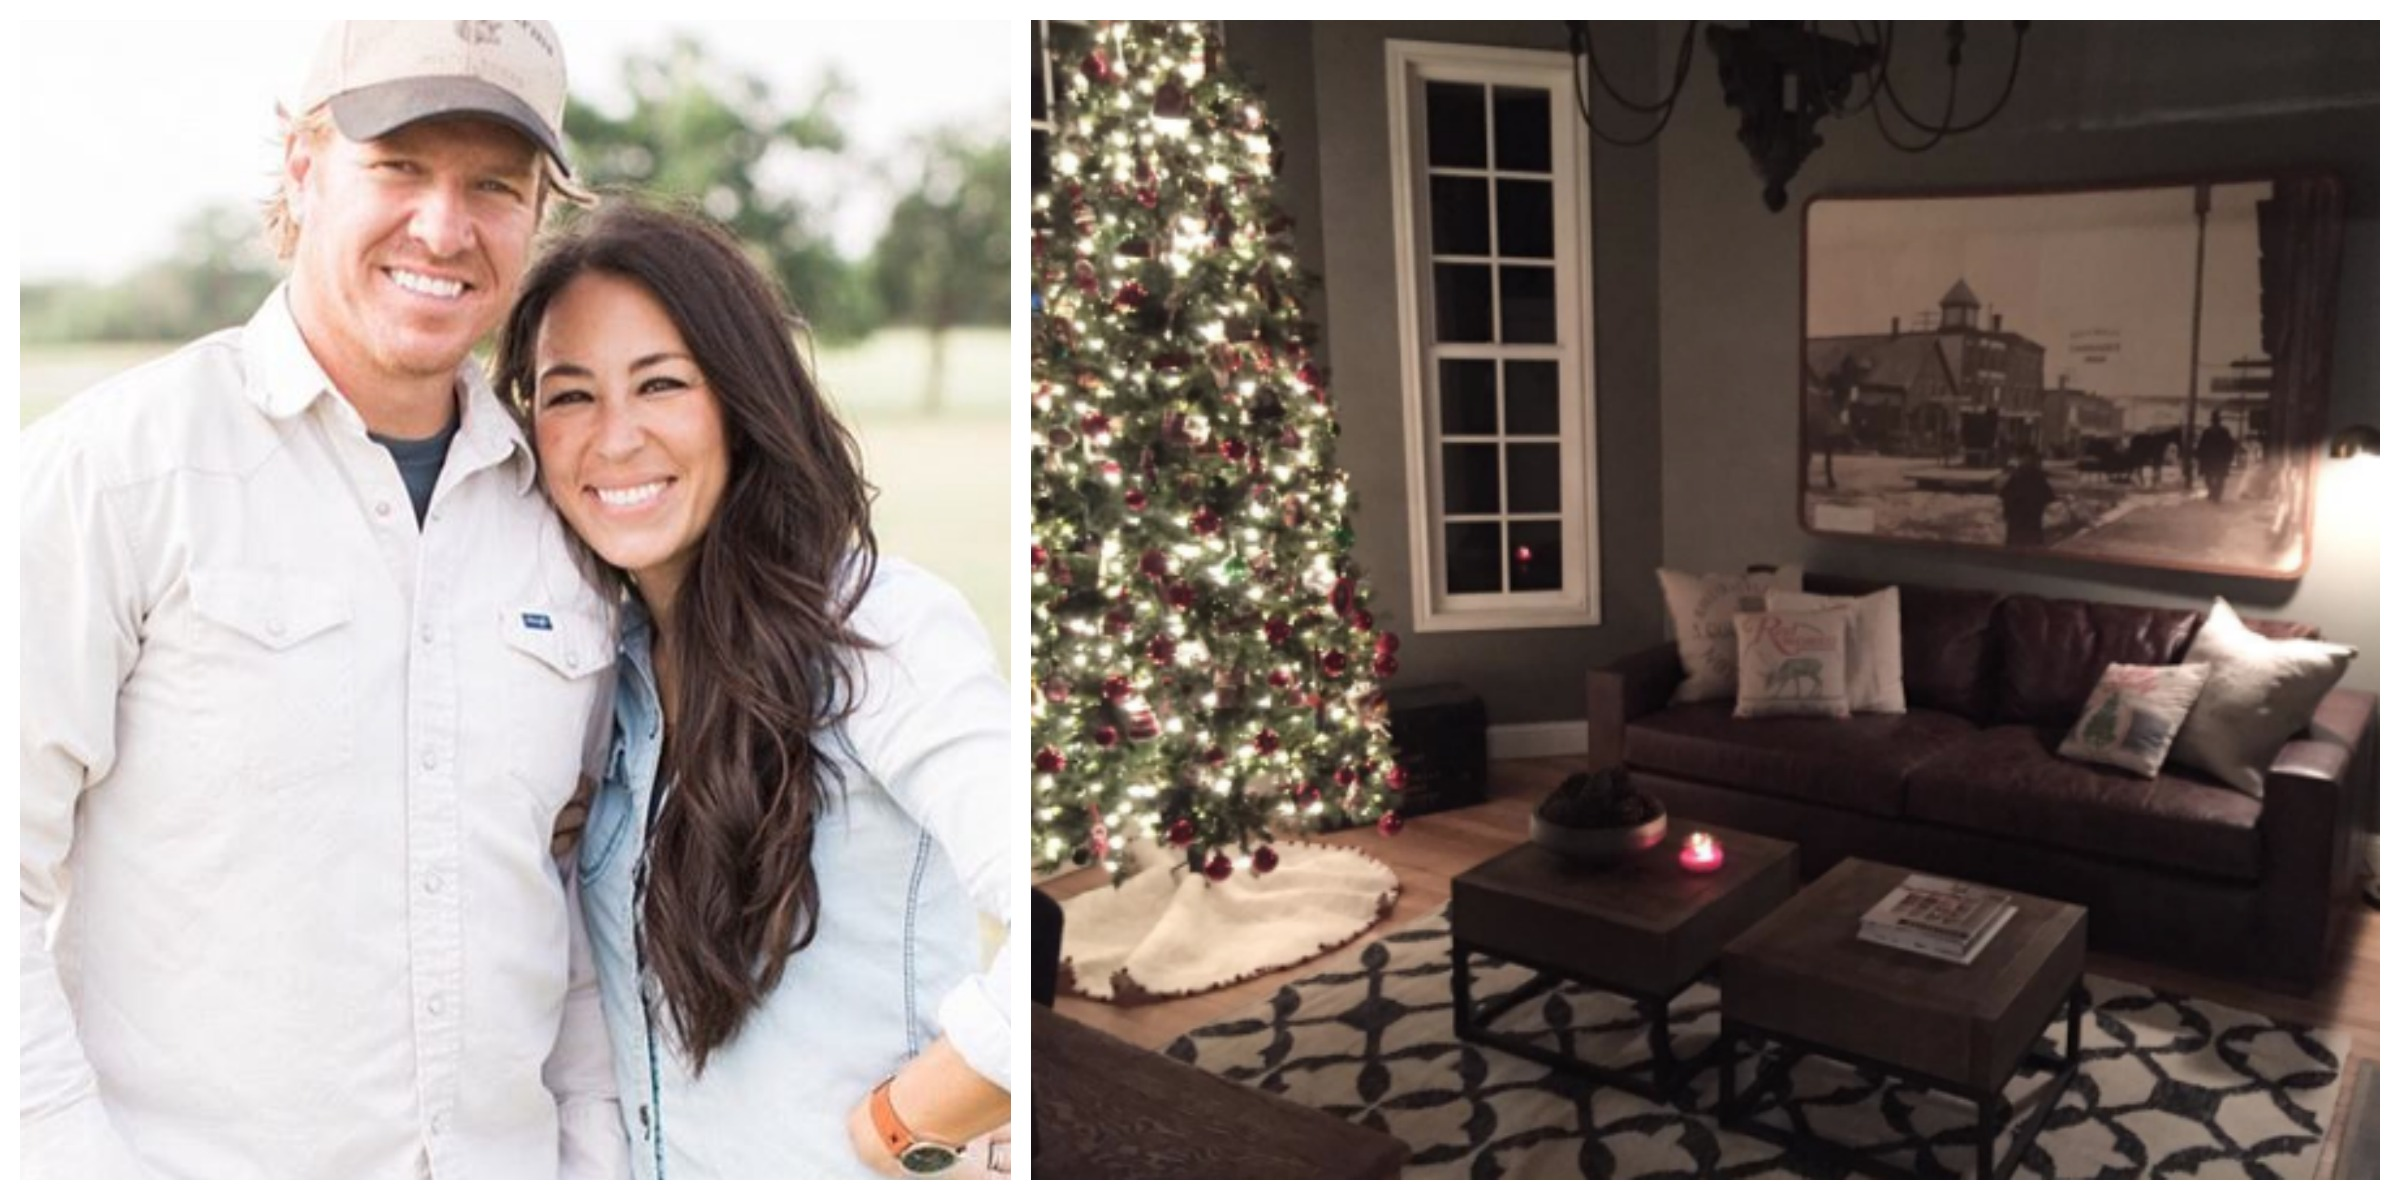 Joanna gaines christmas how chip and joanna decorate for for Chip and joanna gaines bed and breakfast